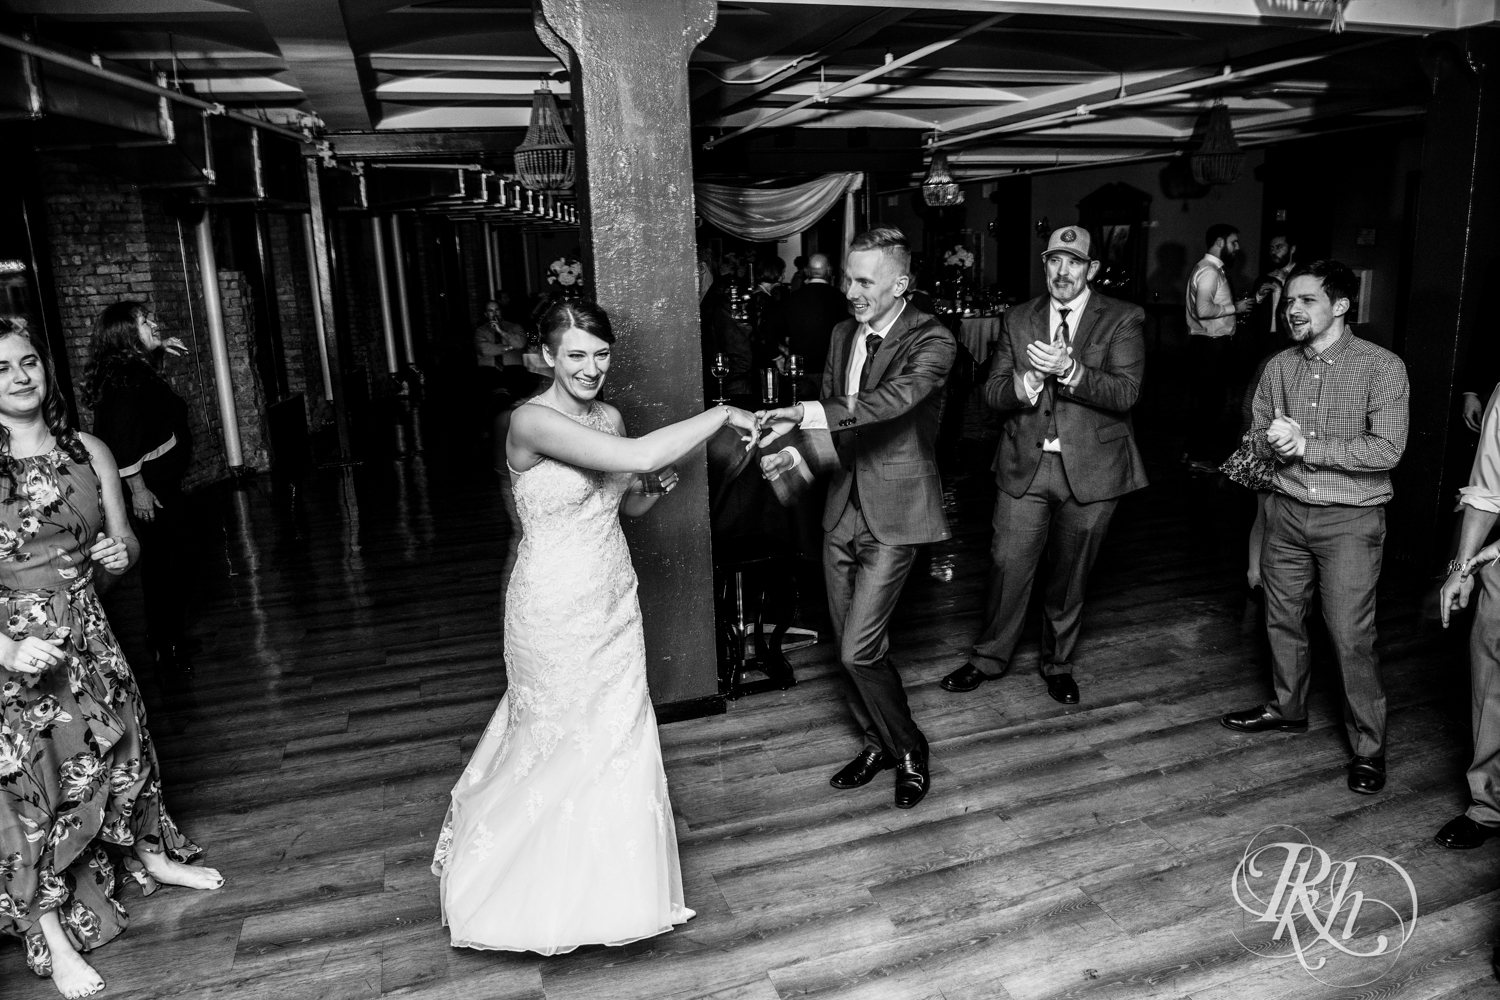 Jillian & Jared - Minnesota Wedding Photography - Lumber Exchange Event Center - RKH Images - Blog (83 of 87).jpg